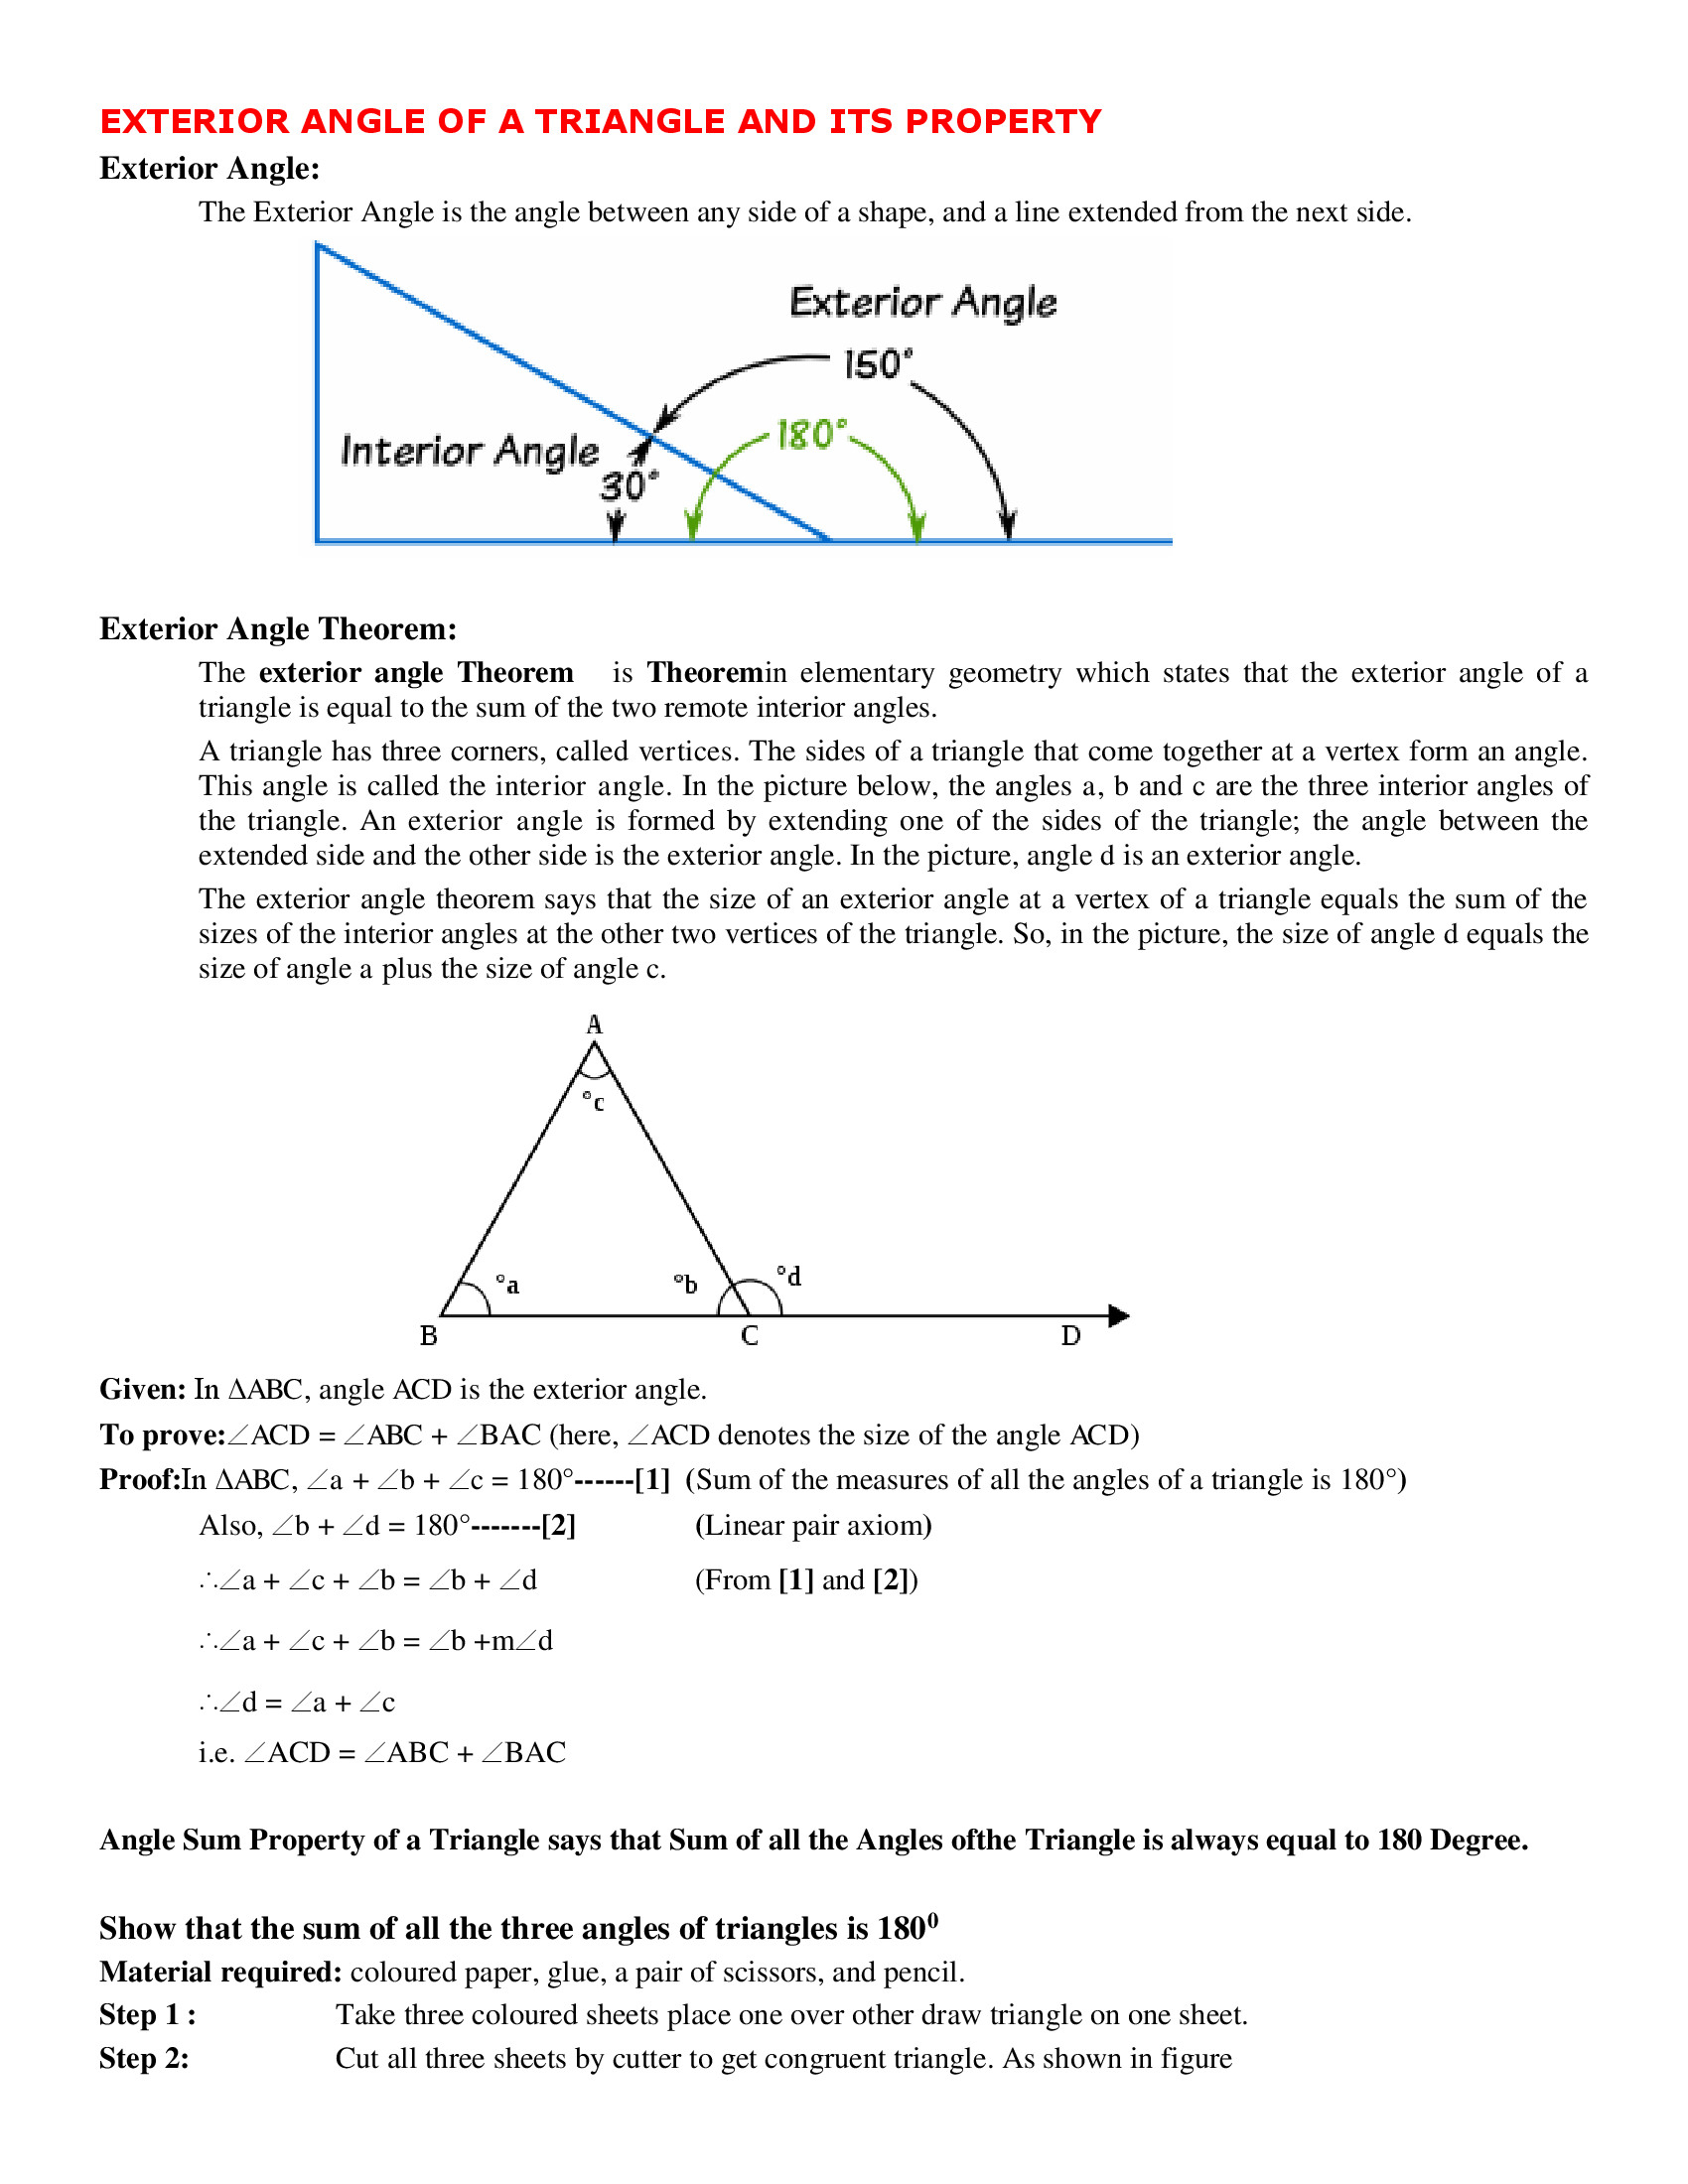 Exterior Angle Of A Triangle And Its Property Worksheet